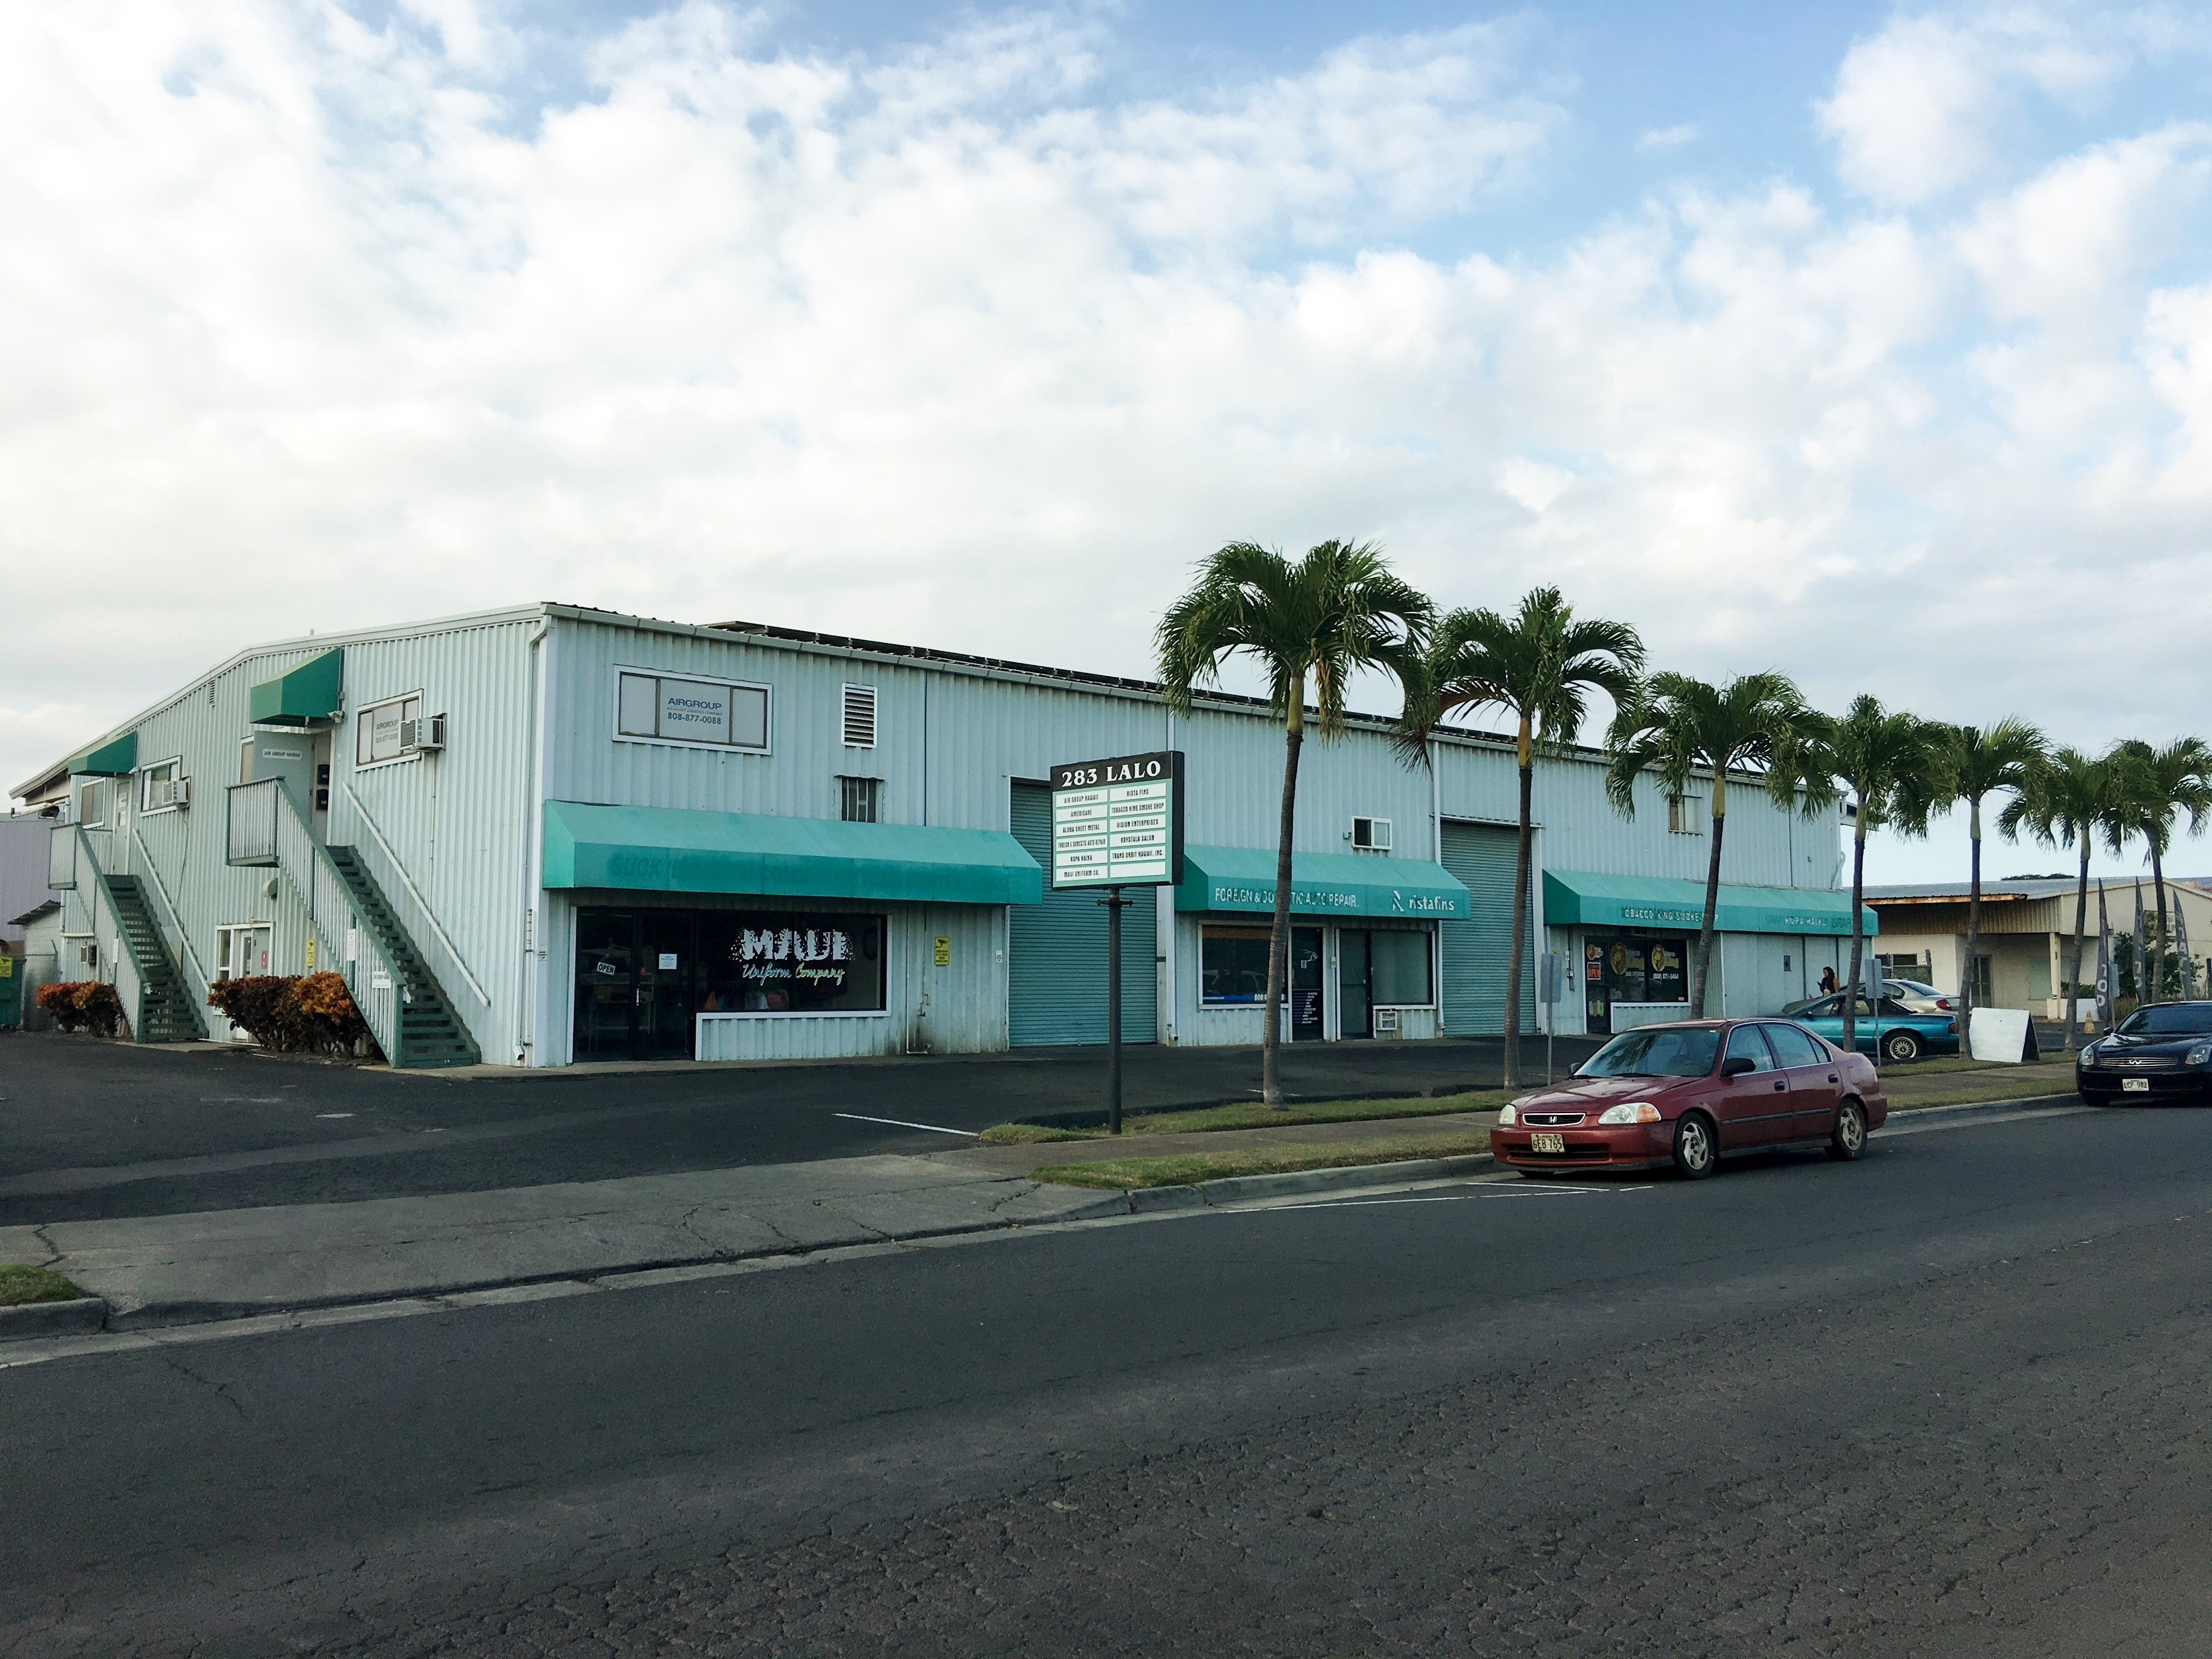 Kokua Realty Commercial Real Estate For Lease Central Office 283 Lalo Street Kahului Hawaii Keoni Fursse Investment Properties